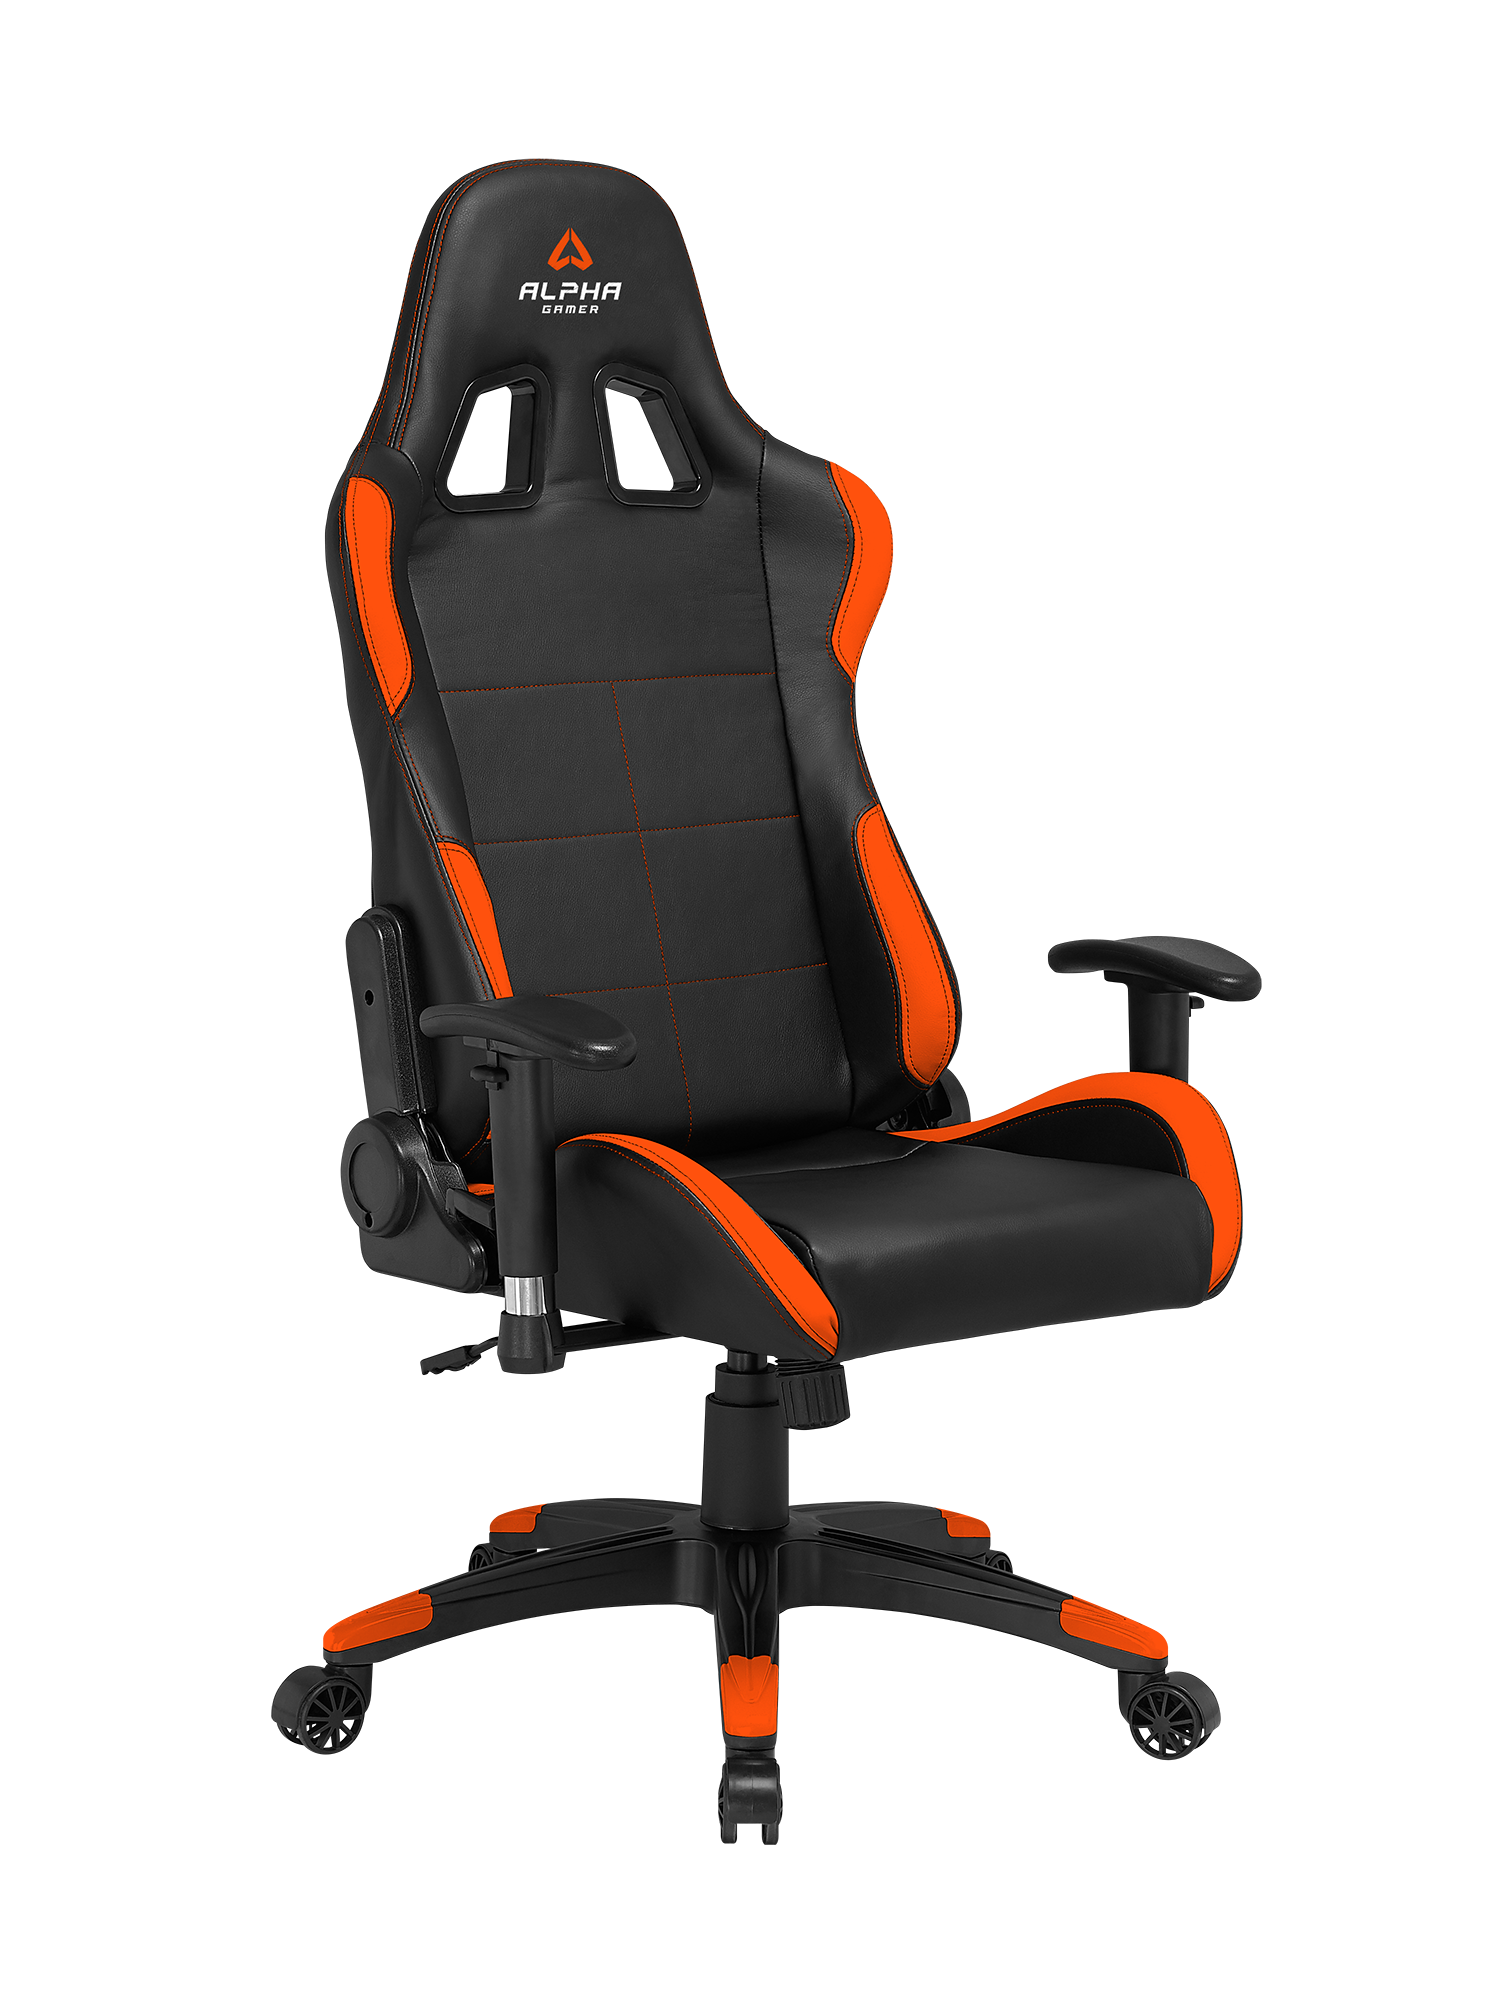 Fabulous Buy Alpha Gamer Vega Gaming Chair Ocoug Best Dining Table And Chair Ideas Images Ocougorg